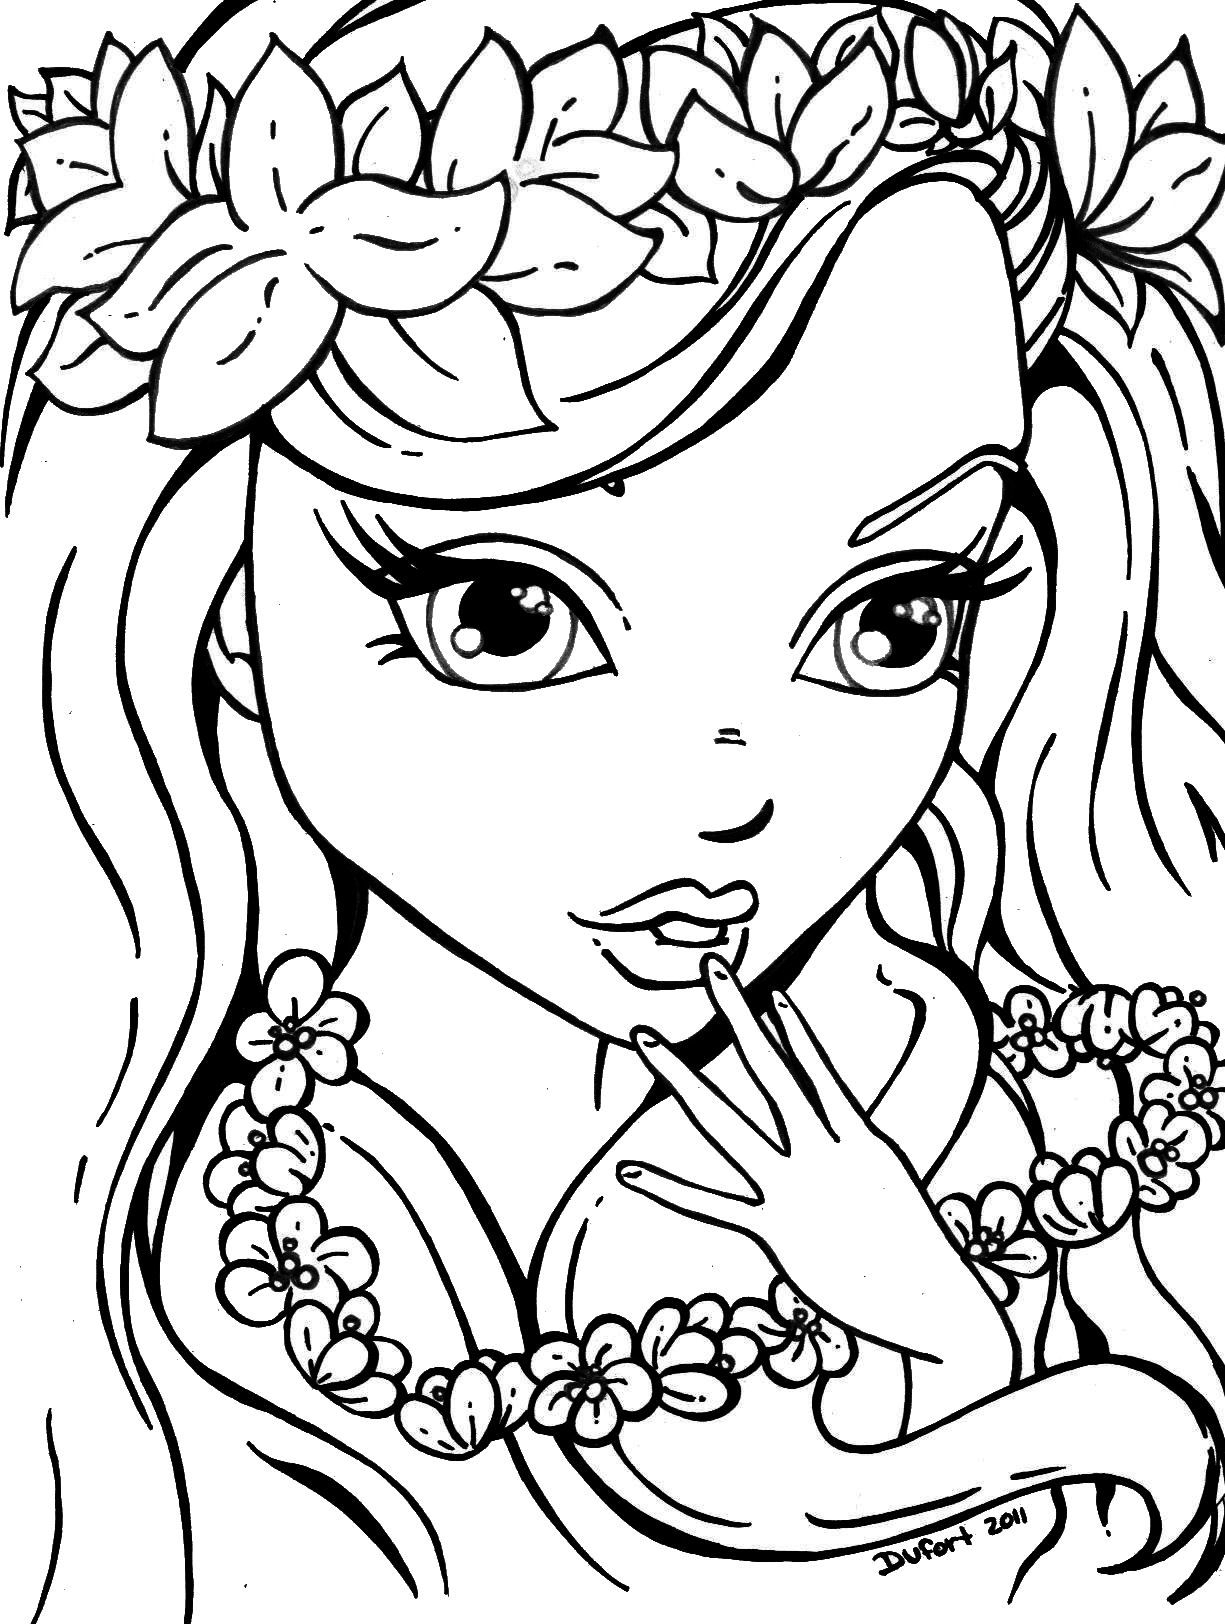 coloring pages for tweens cool coloring pages for tweens at getdrawings free download tweens pages for coloring